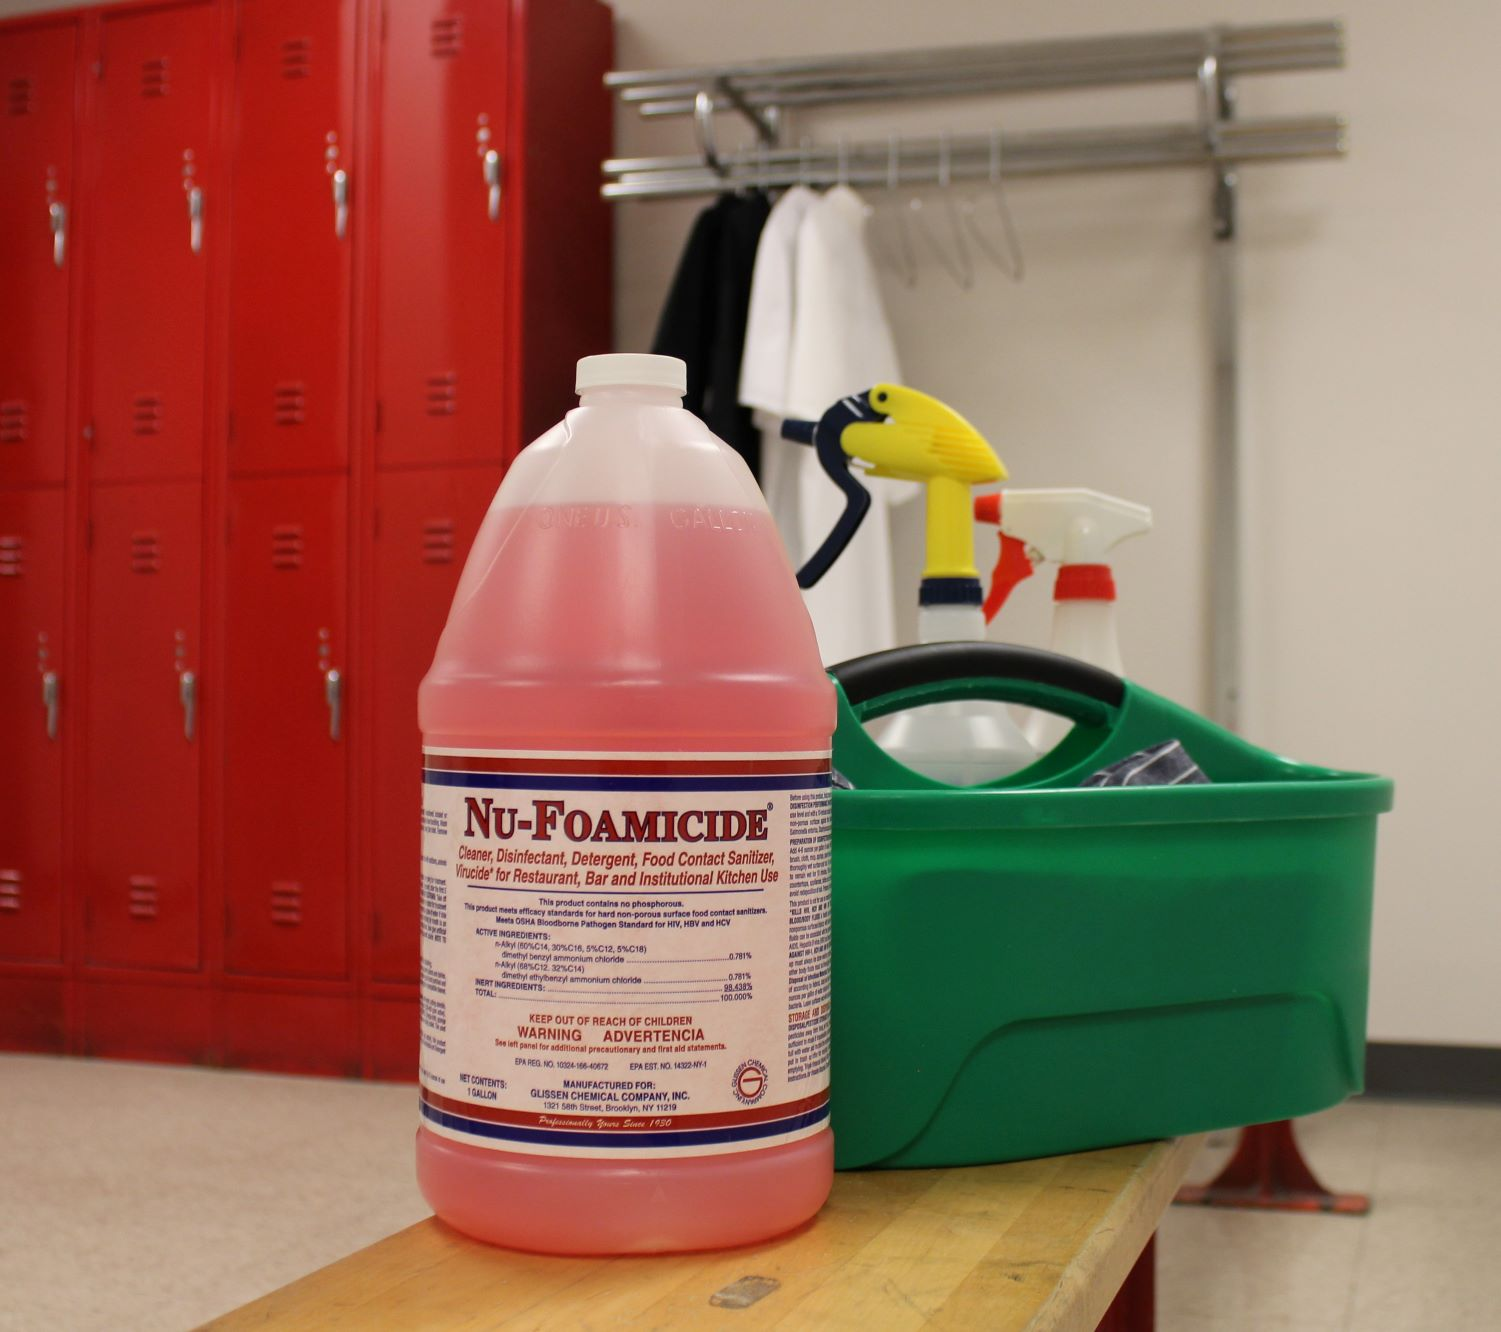 NuFoamicide Cleaner from TableCraft